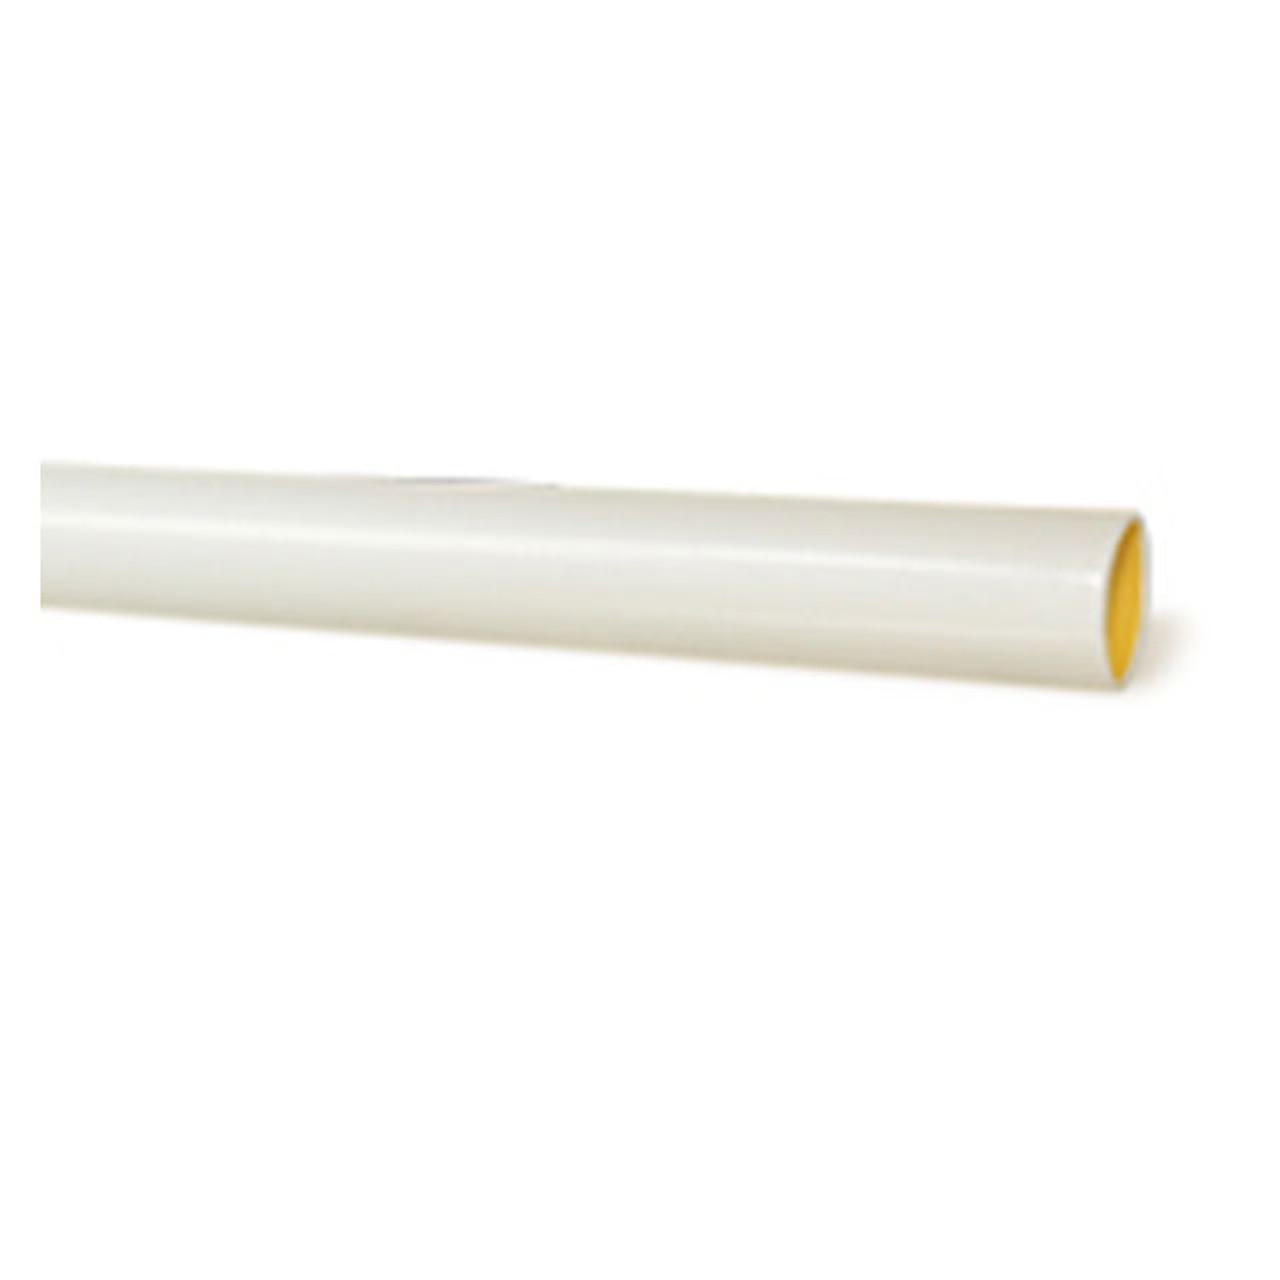 "HEAT SHRINK 3/4"" WHITE 4'  ADHESIVE LINED DUAL WALL"